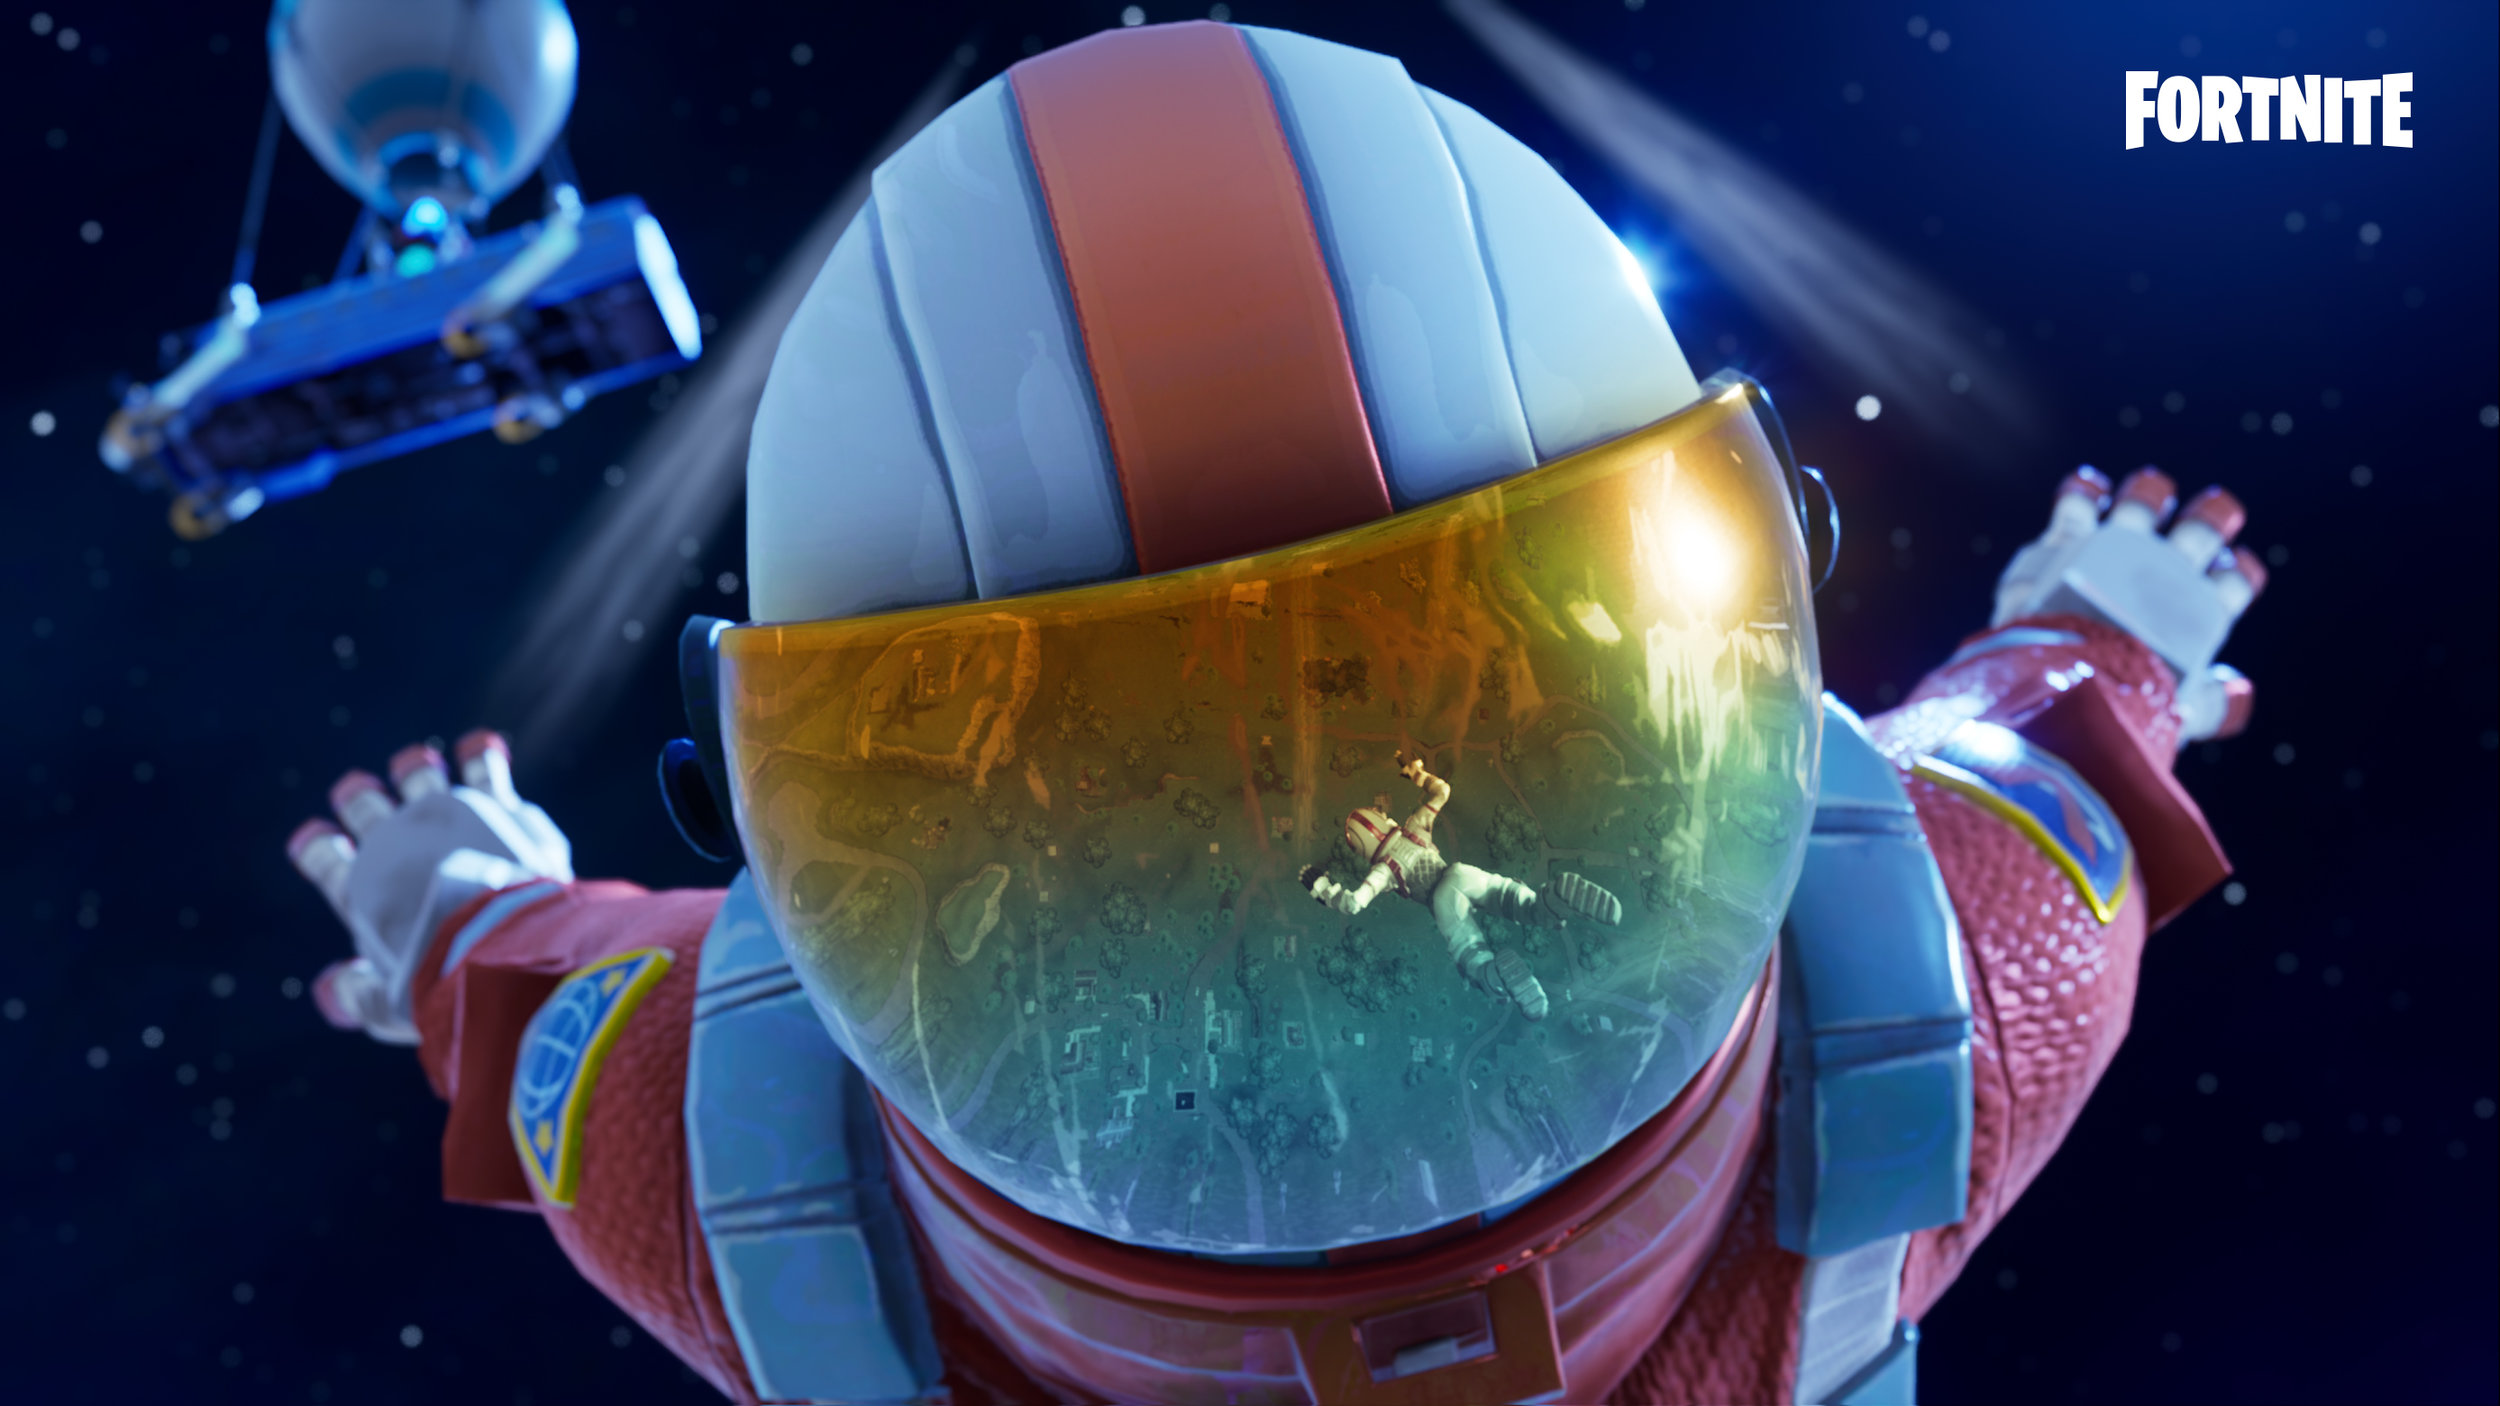 Season 3 - The second season has come to an end and you have had little time to prepare because season 3 is Live. We go over all the changes and things you need to know for Fortnite Season 3.